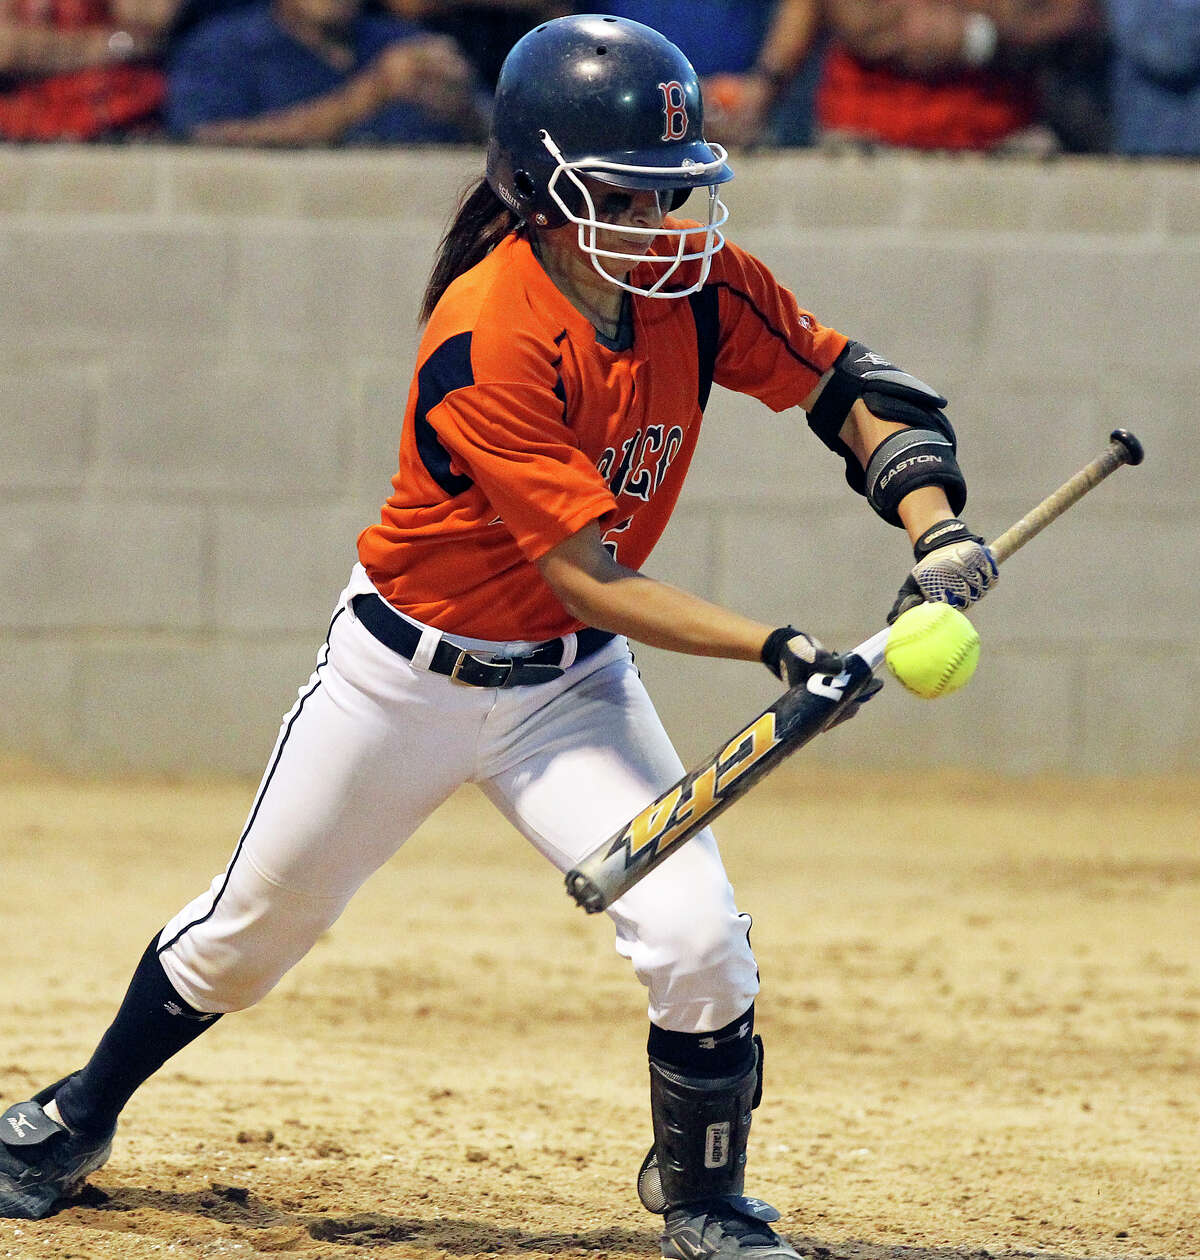 Christy Trevino lays down a bunt for the Broncos as Brandeis beats Southwest 6-4 in playoff action at Southwest High School on April 26, 2012. Tom Reel/ San Antonio EXpress-News